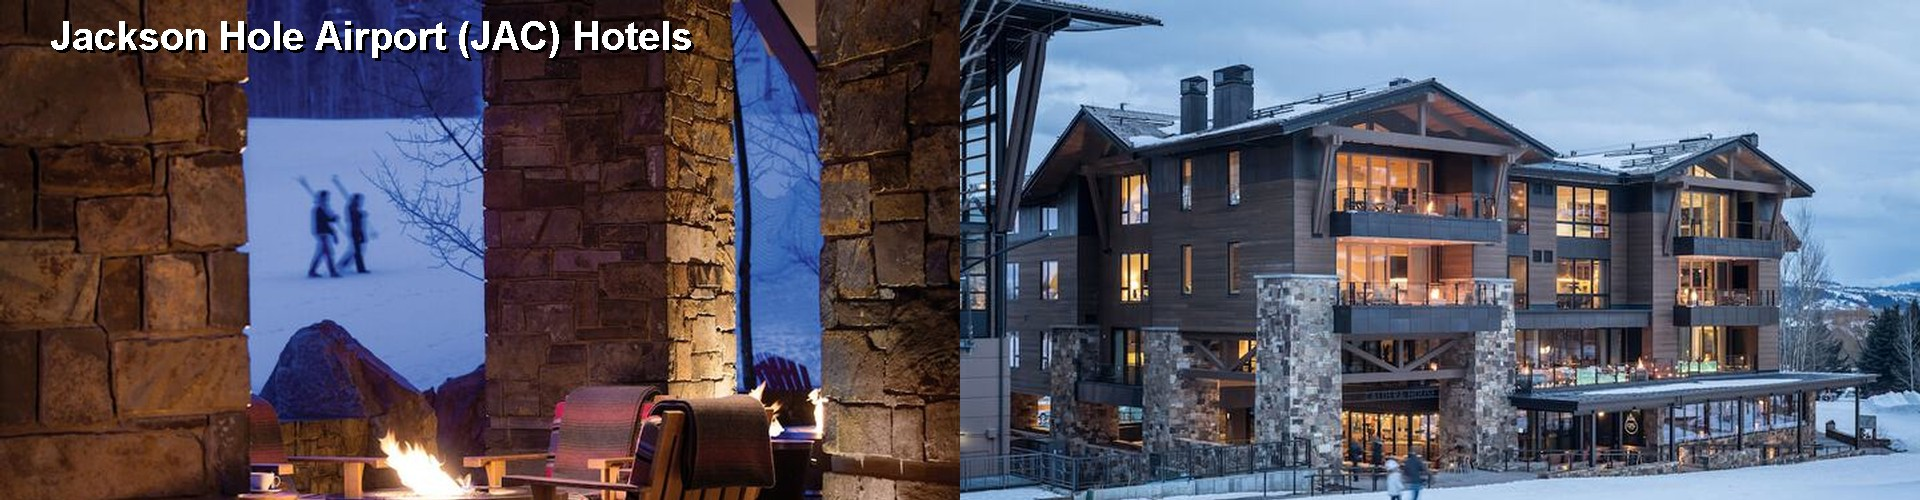 5 Best Hotels near Jackson Hole Airport (JAC)